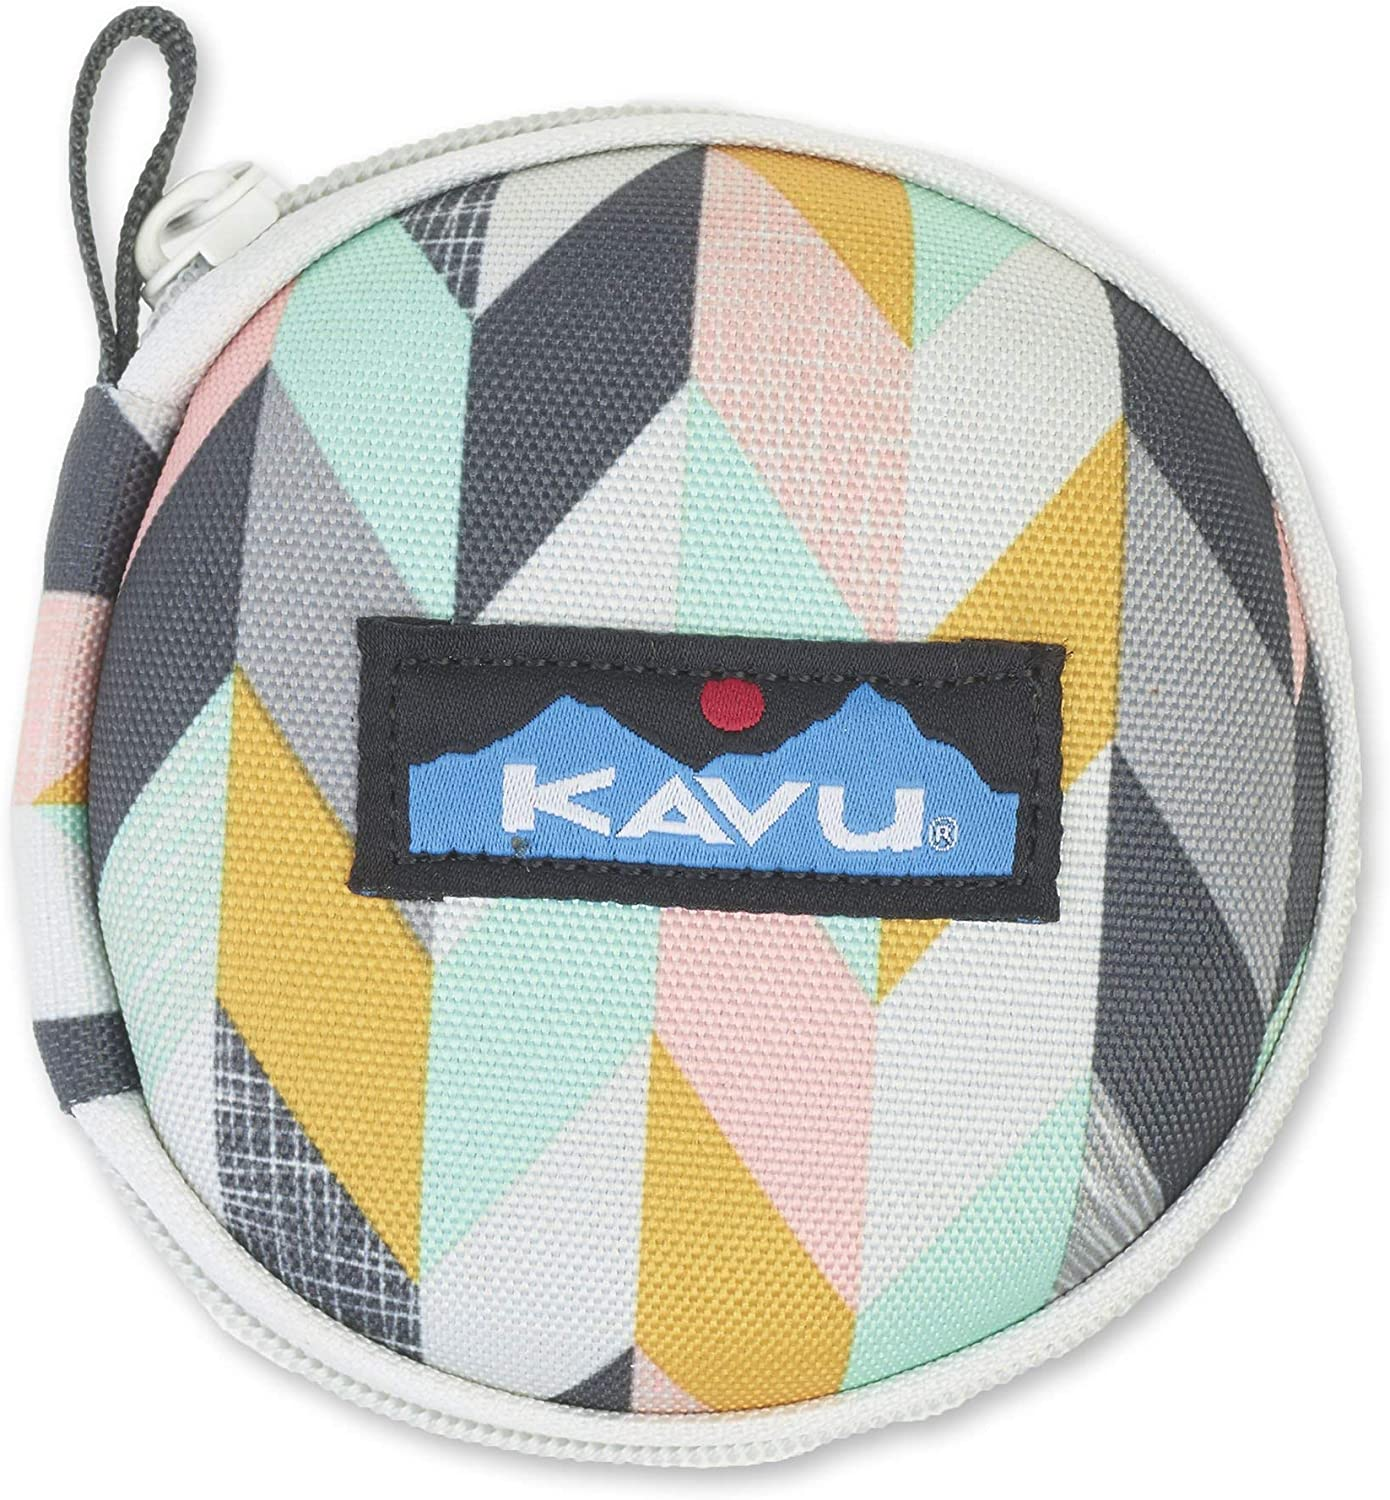 KAVU Powerbox Semi Hard Phone Charger USB Cable Case for Travel